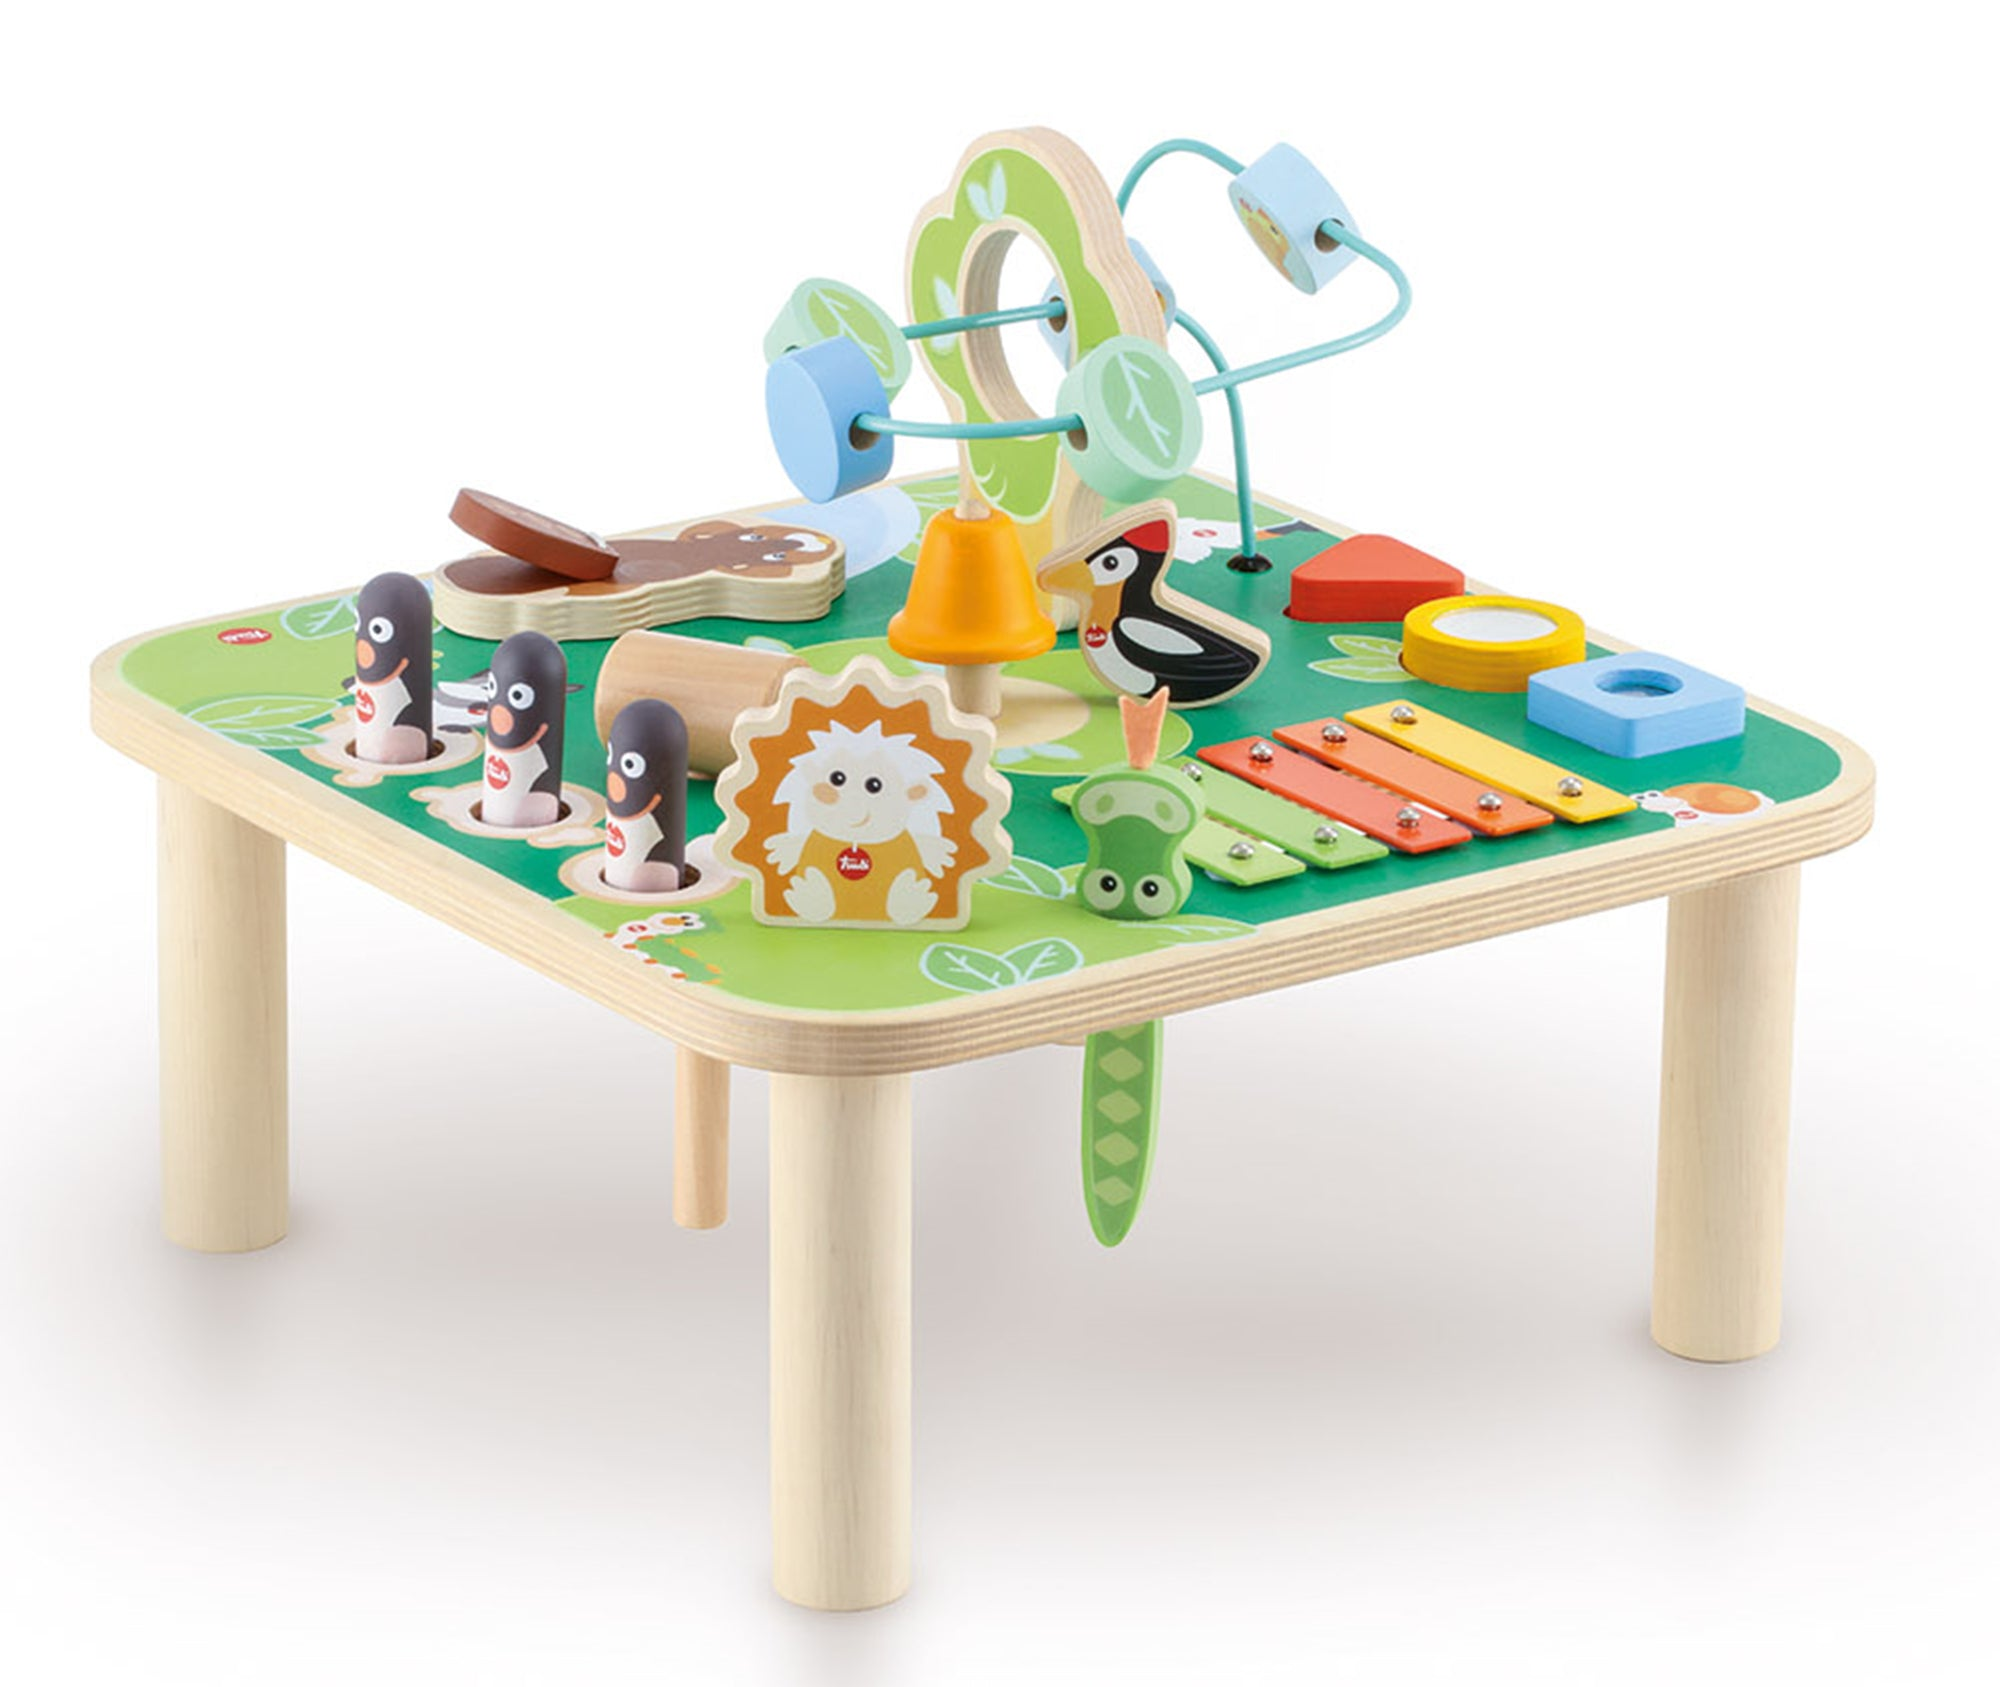 Sevi Multiactivity Table Wood land